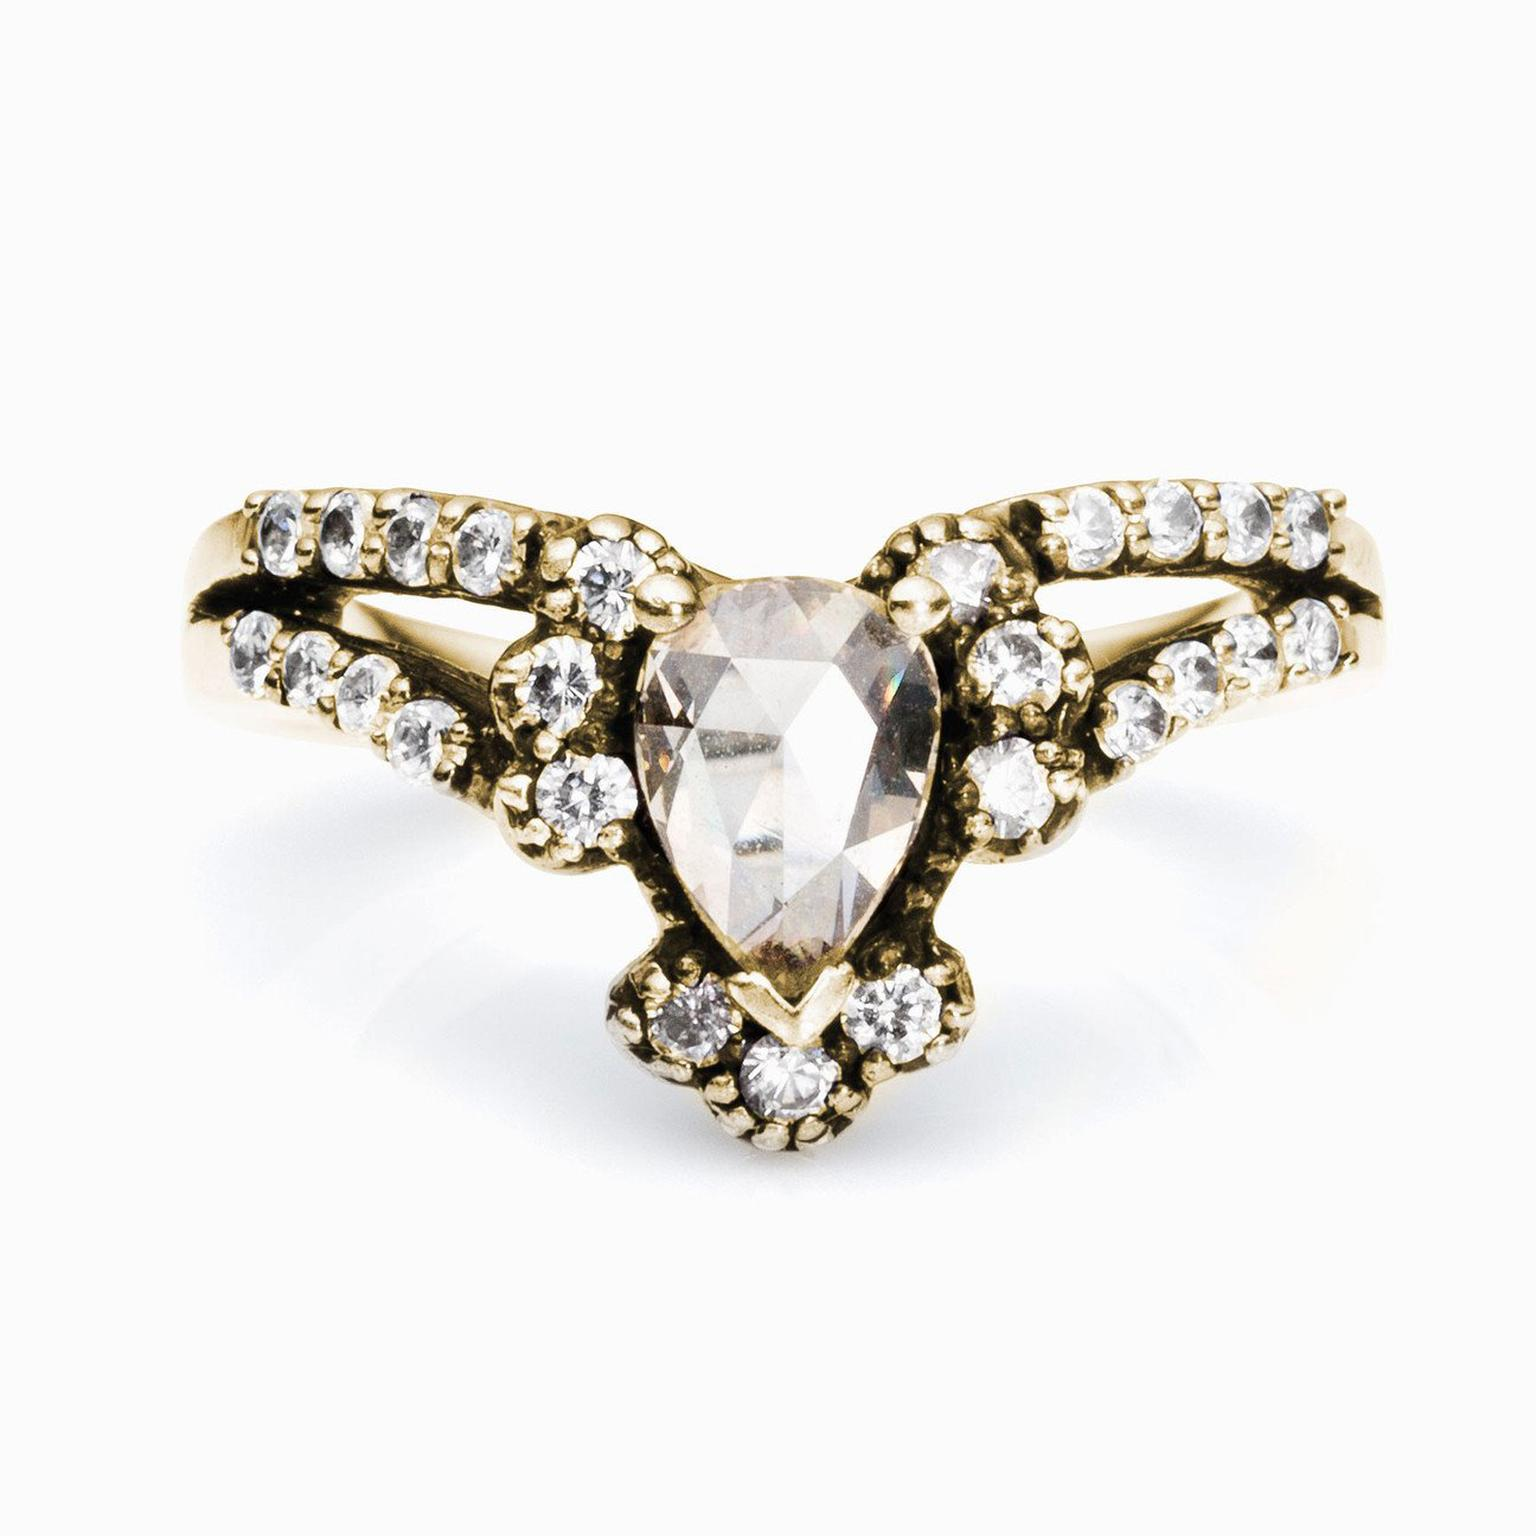 Maniamania split-shank diamond engagement ring